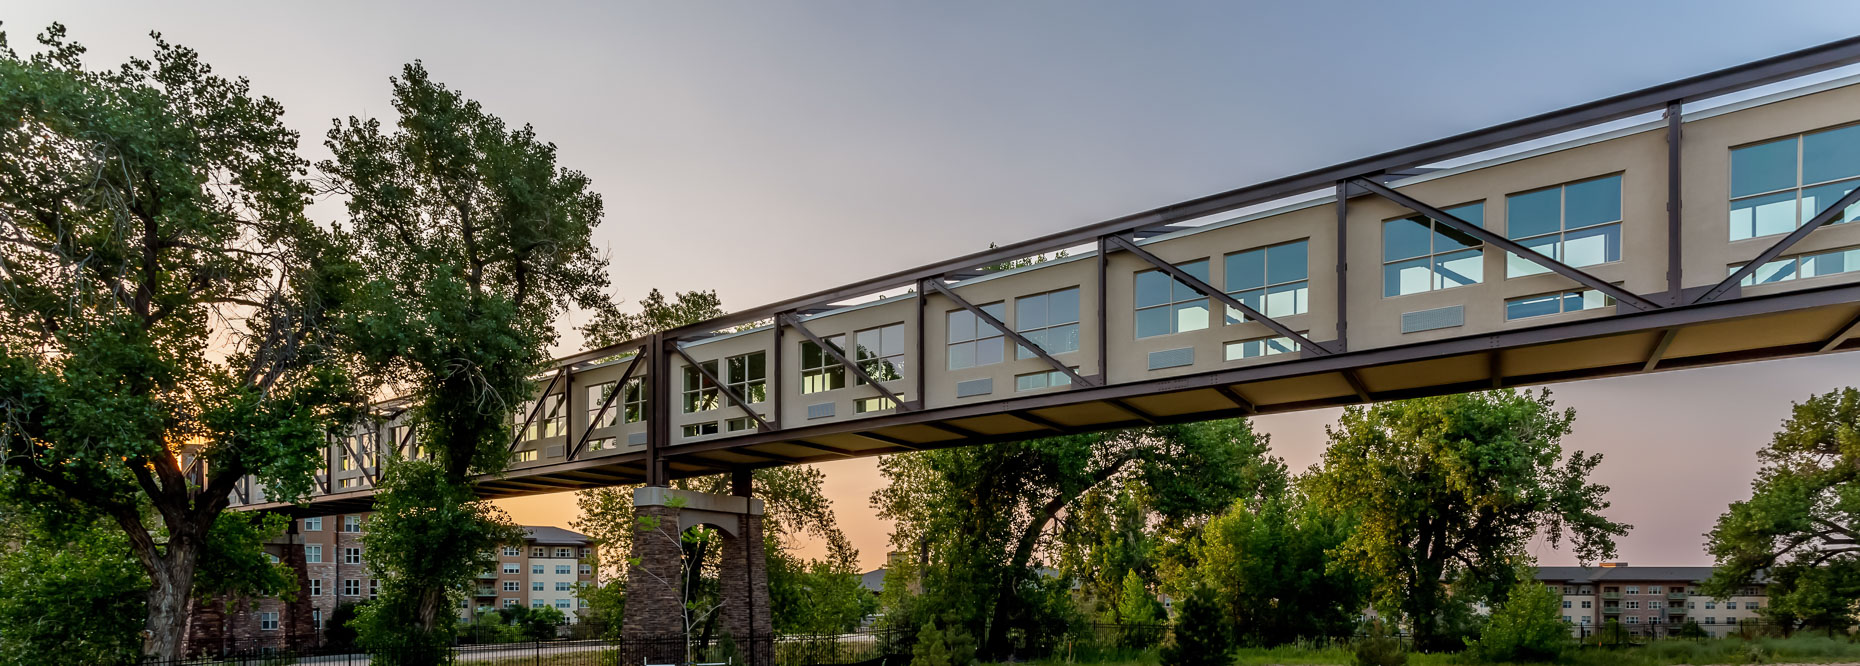 1217Wind Crest, Highlands Ranch, Colorado, covered pedestrian bridge